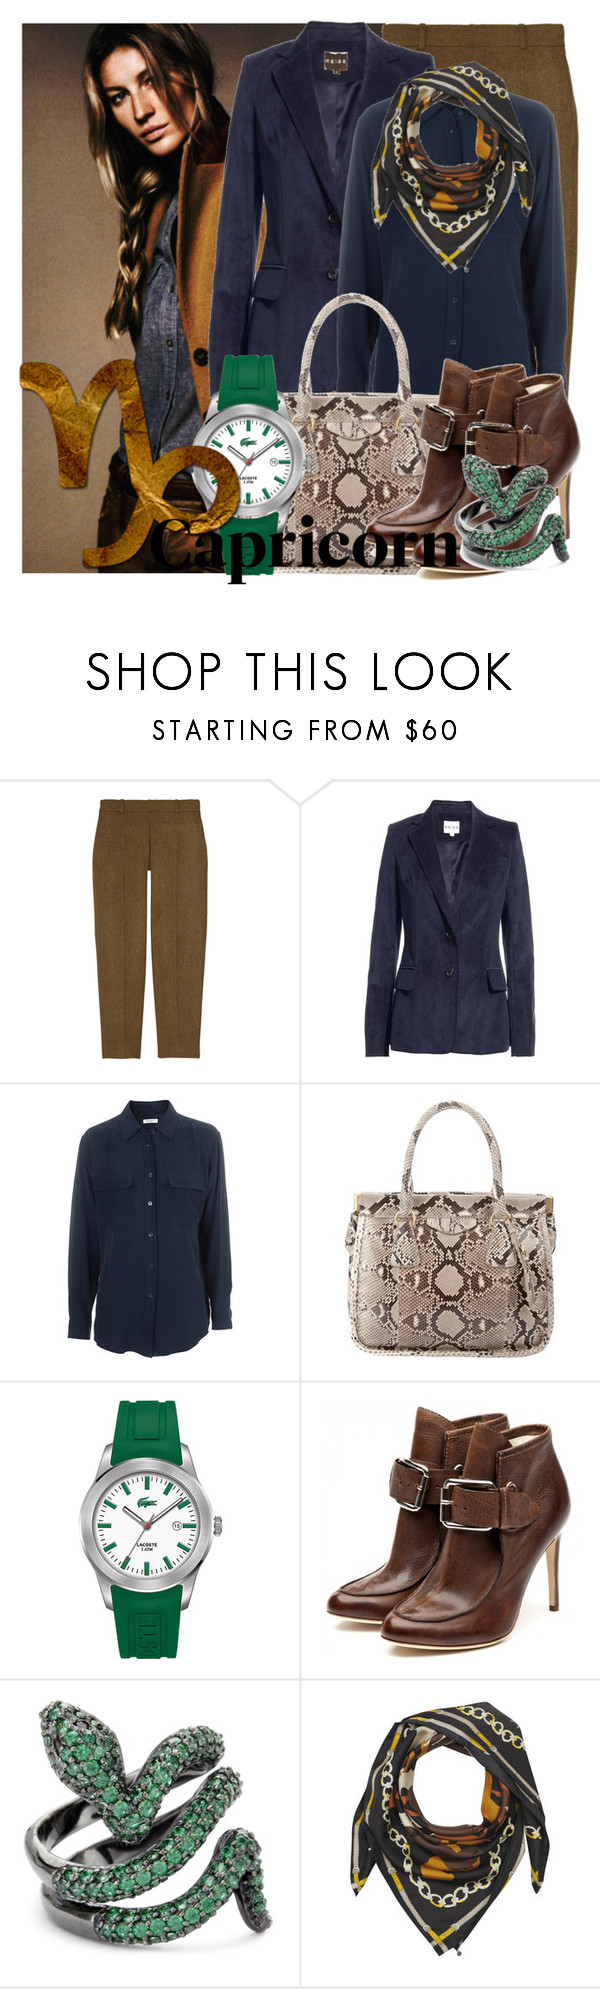 """""""capricorn."""" by mostincrediblebaby ❤ liked on Polyvore featuring J.Crew, Reiss, Equipment, Prada, Lacoste, Falcon Enamelware and Codello"""